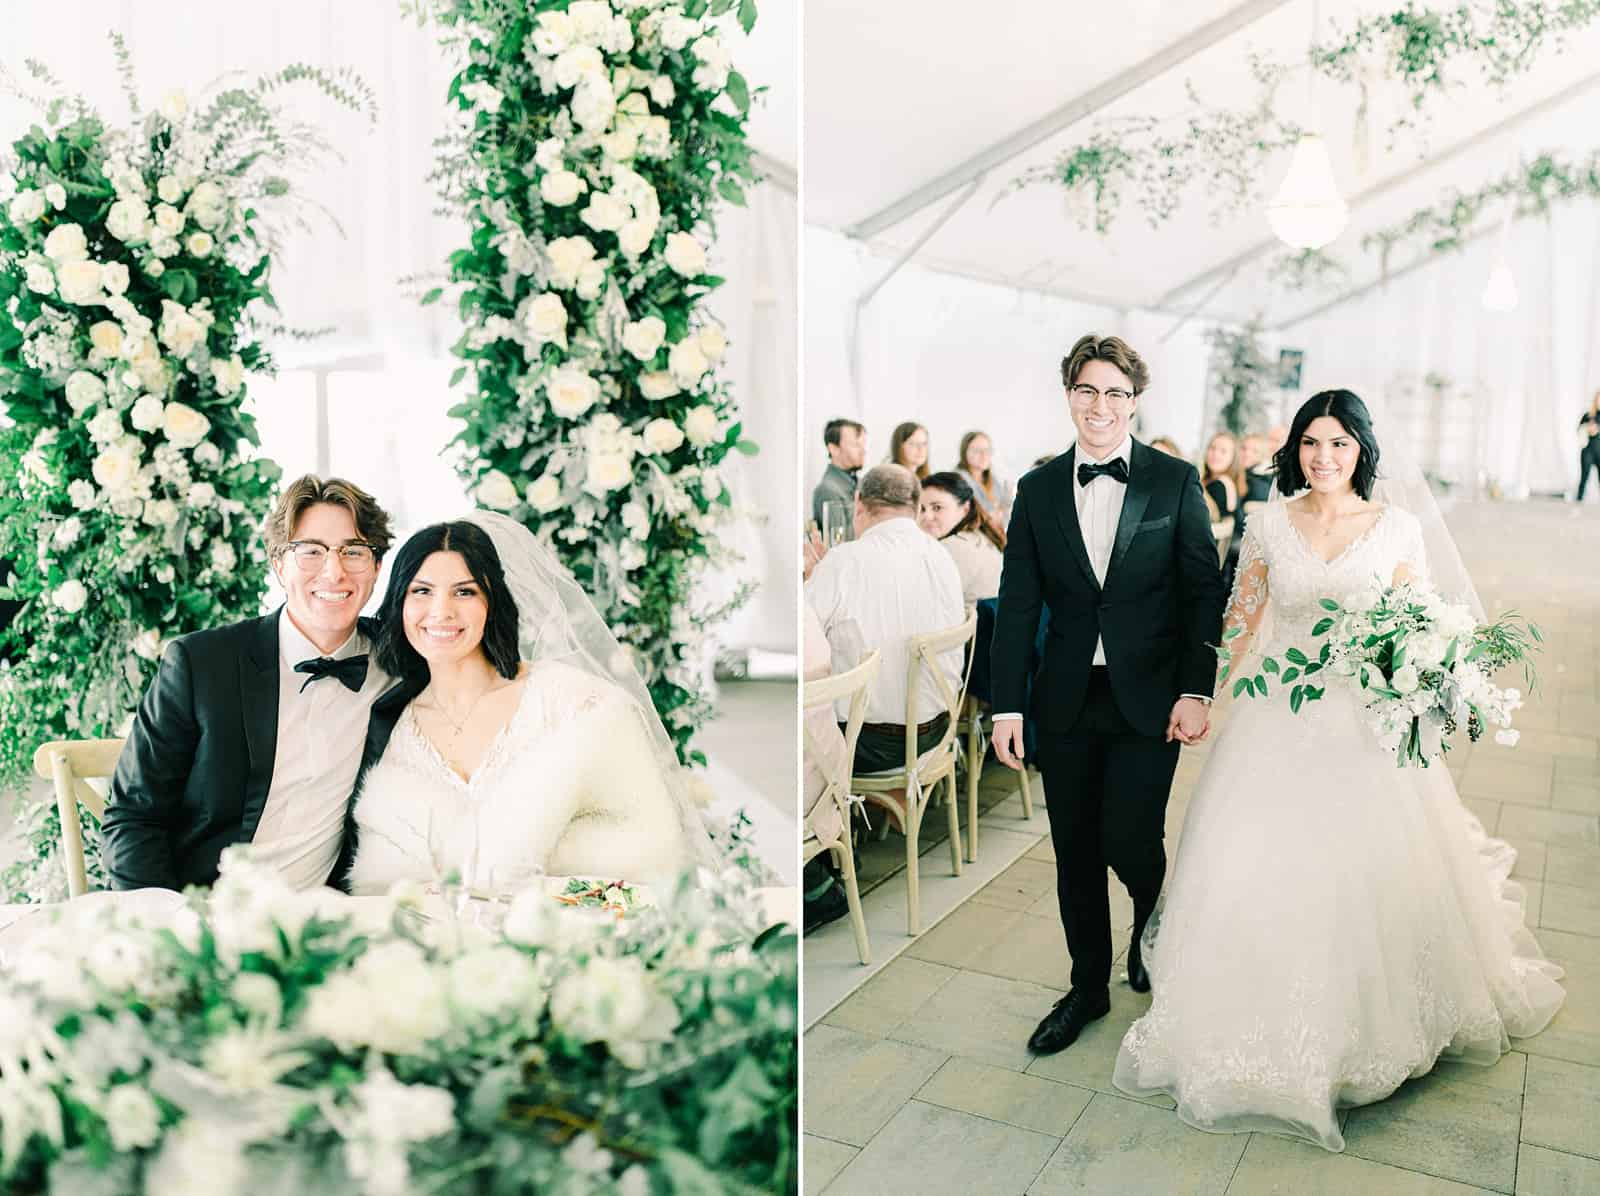 Luxury winter wedding at Willowbridge Estate in Boise, Idaho, bride and groom at sweetheart table with floral arch with white flowers and greenery backdrop, bride and groom walk down aisle